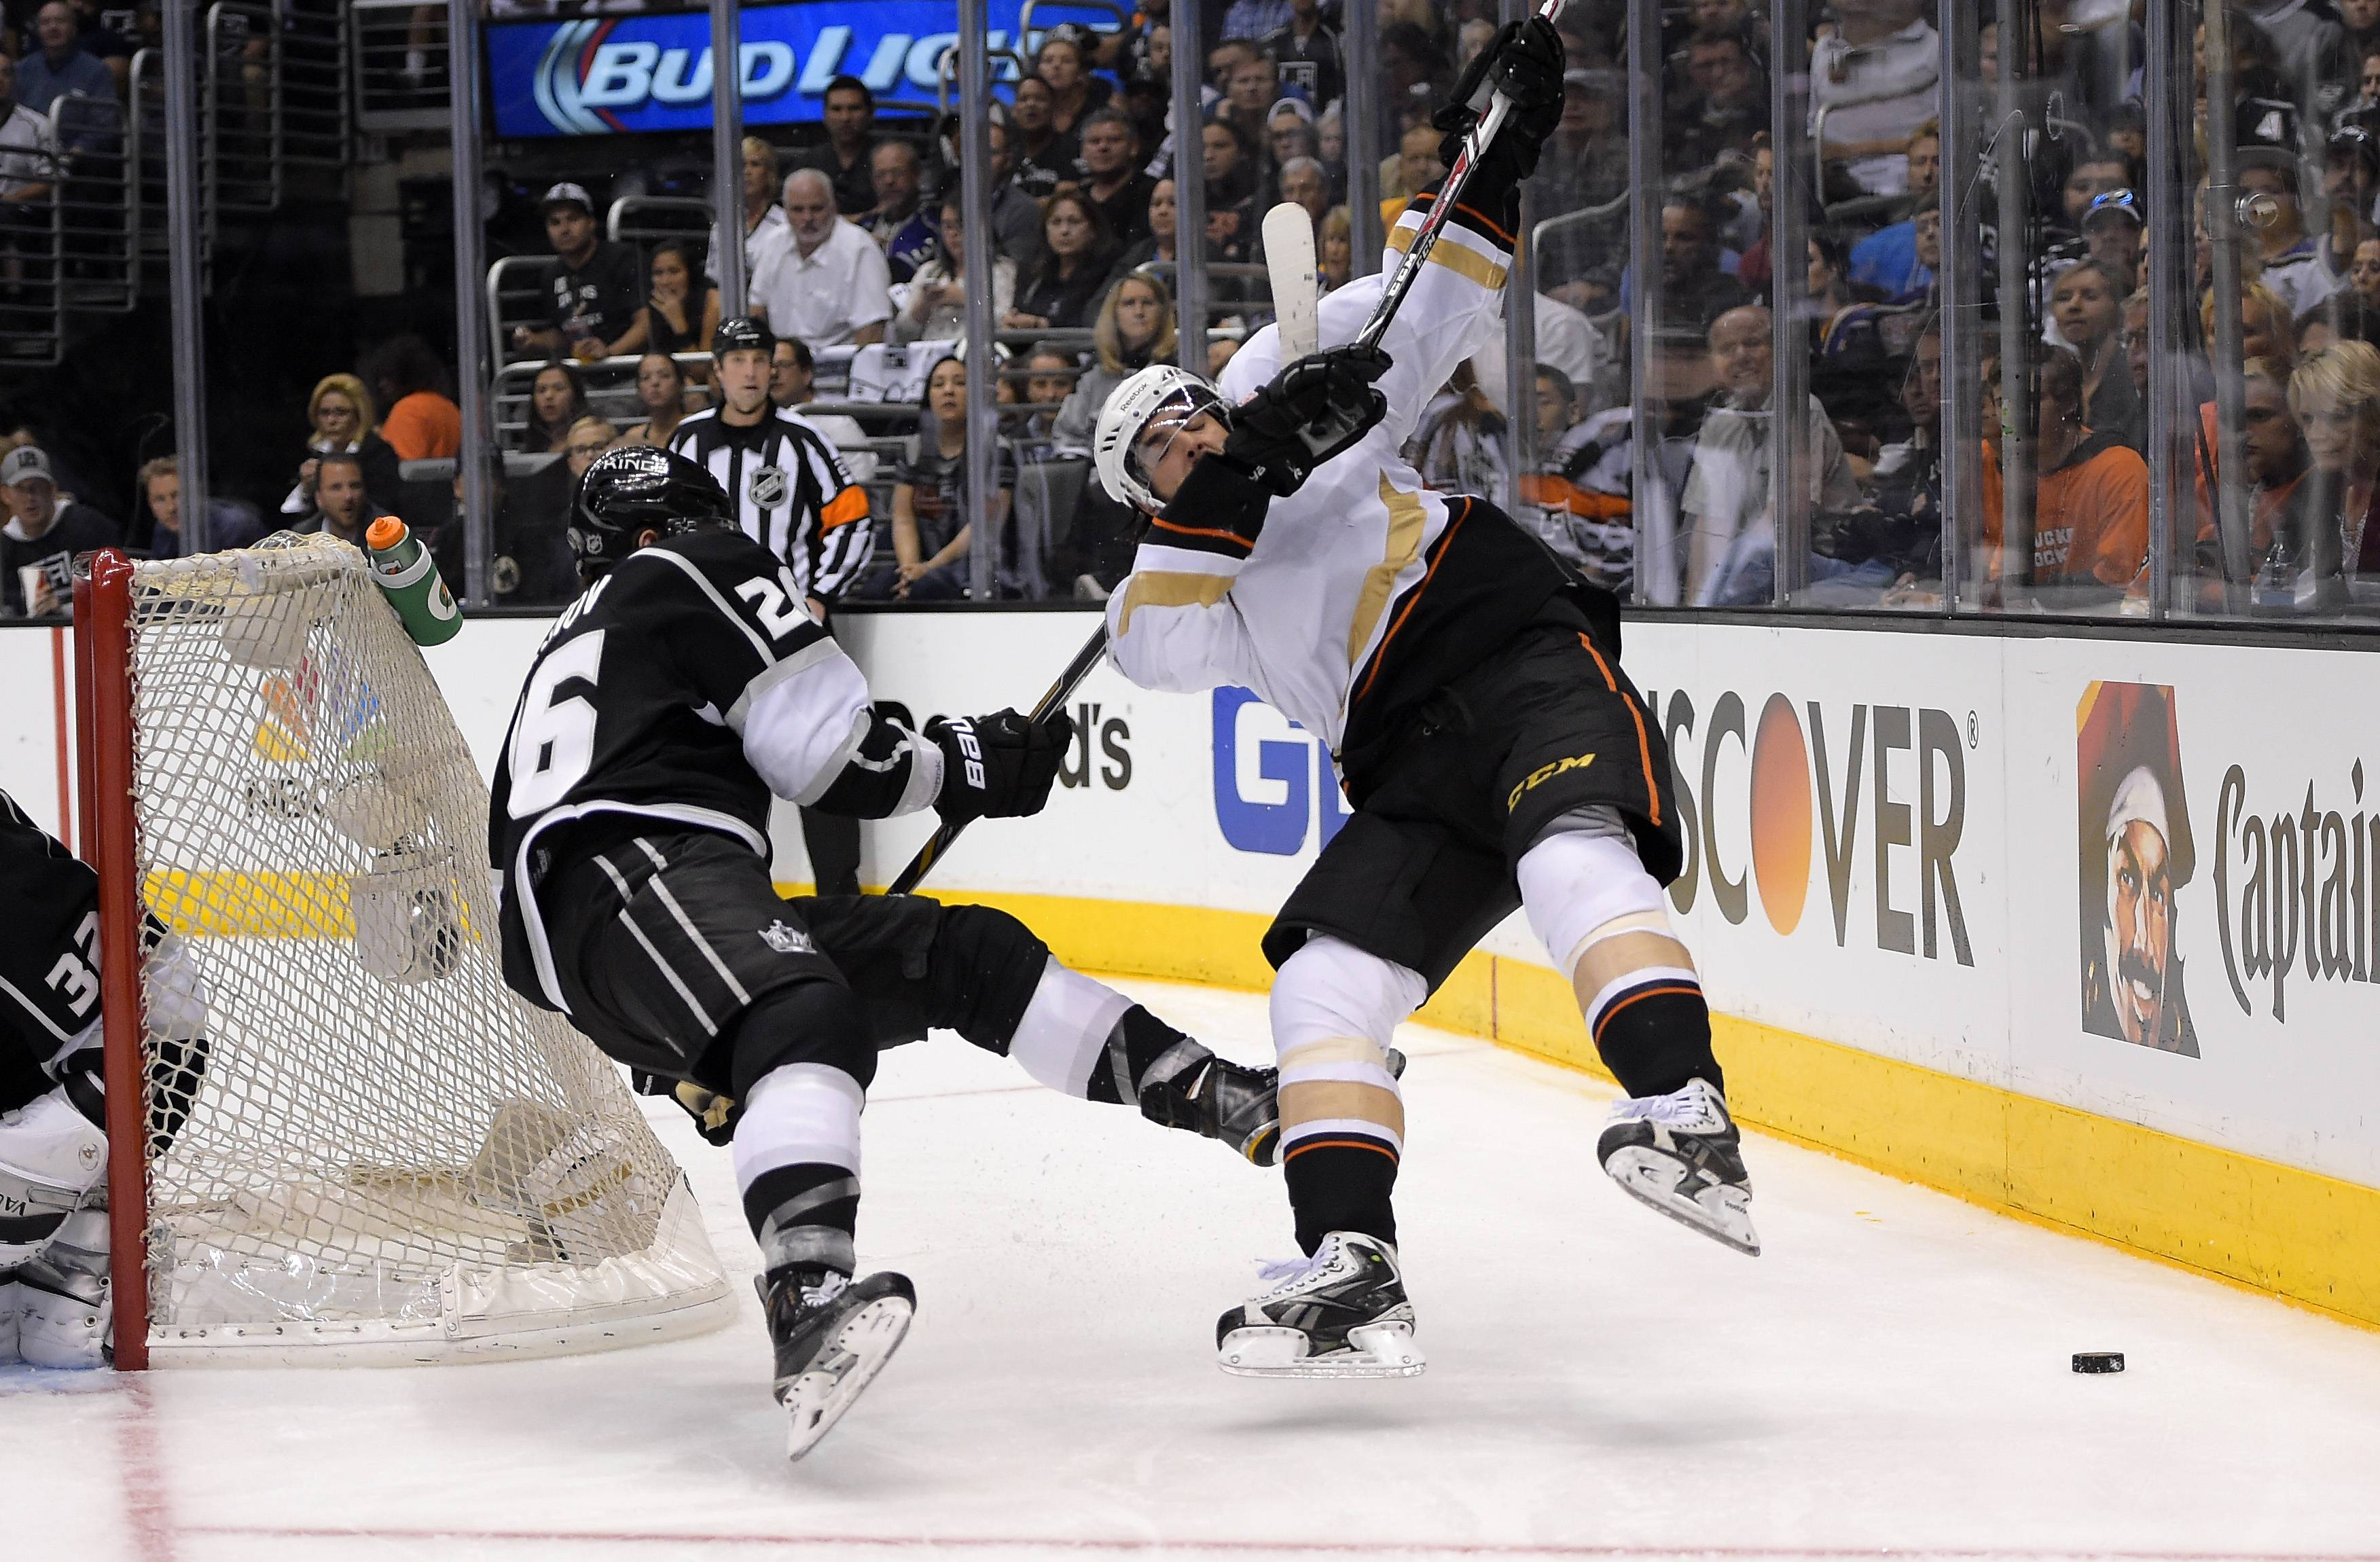 Los Angeles Kings defenseman Slava Voynov, left, of Russia, pulls down Anaheim Ducks center Mathieu Perreault during the third period in Game 6 of an NHL hockey second-round Stanley Cup playoff series, Wednesday. Both teams know the action will be fast and furious in tonight's Game 7as it's win or go home.